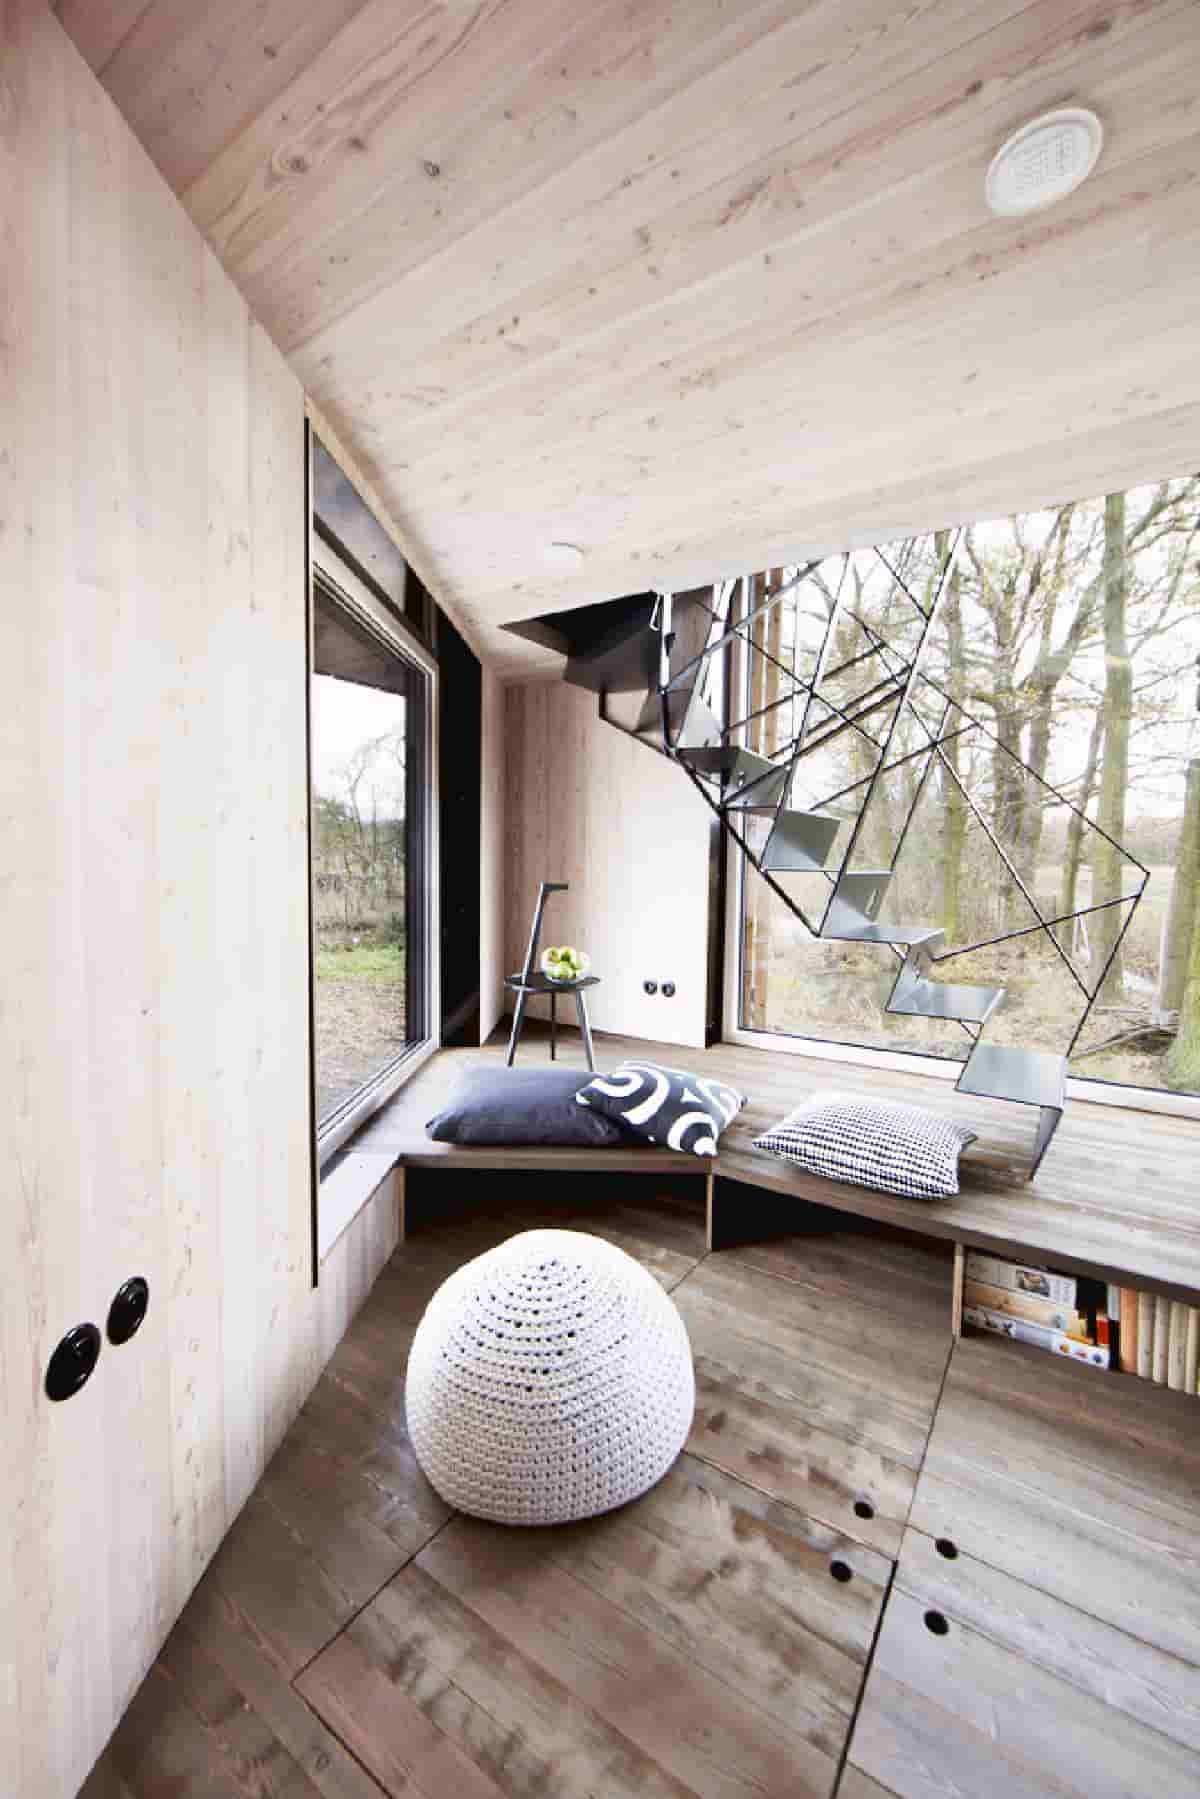 Design an open-plan, low-energy wooden house to improve the closeness of the family